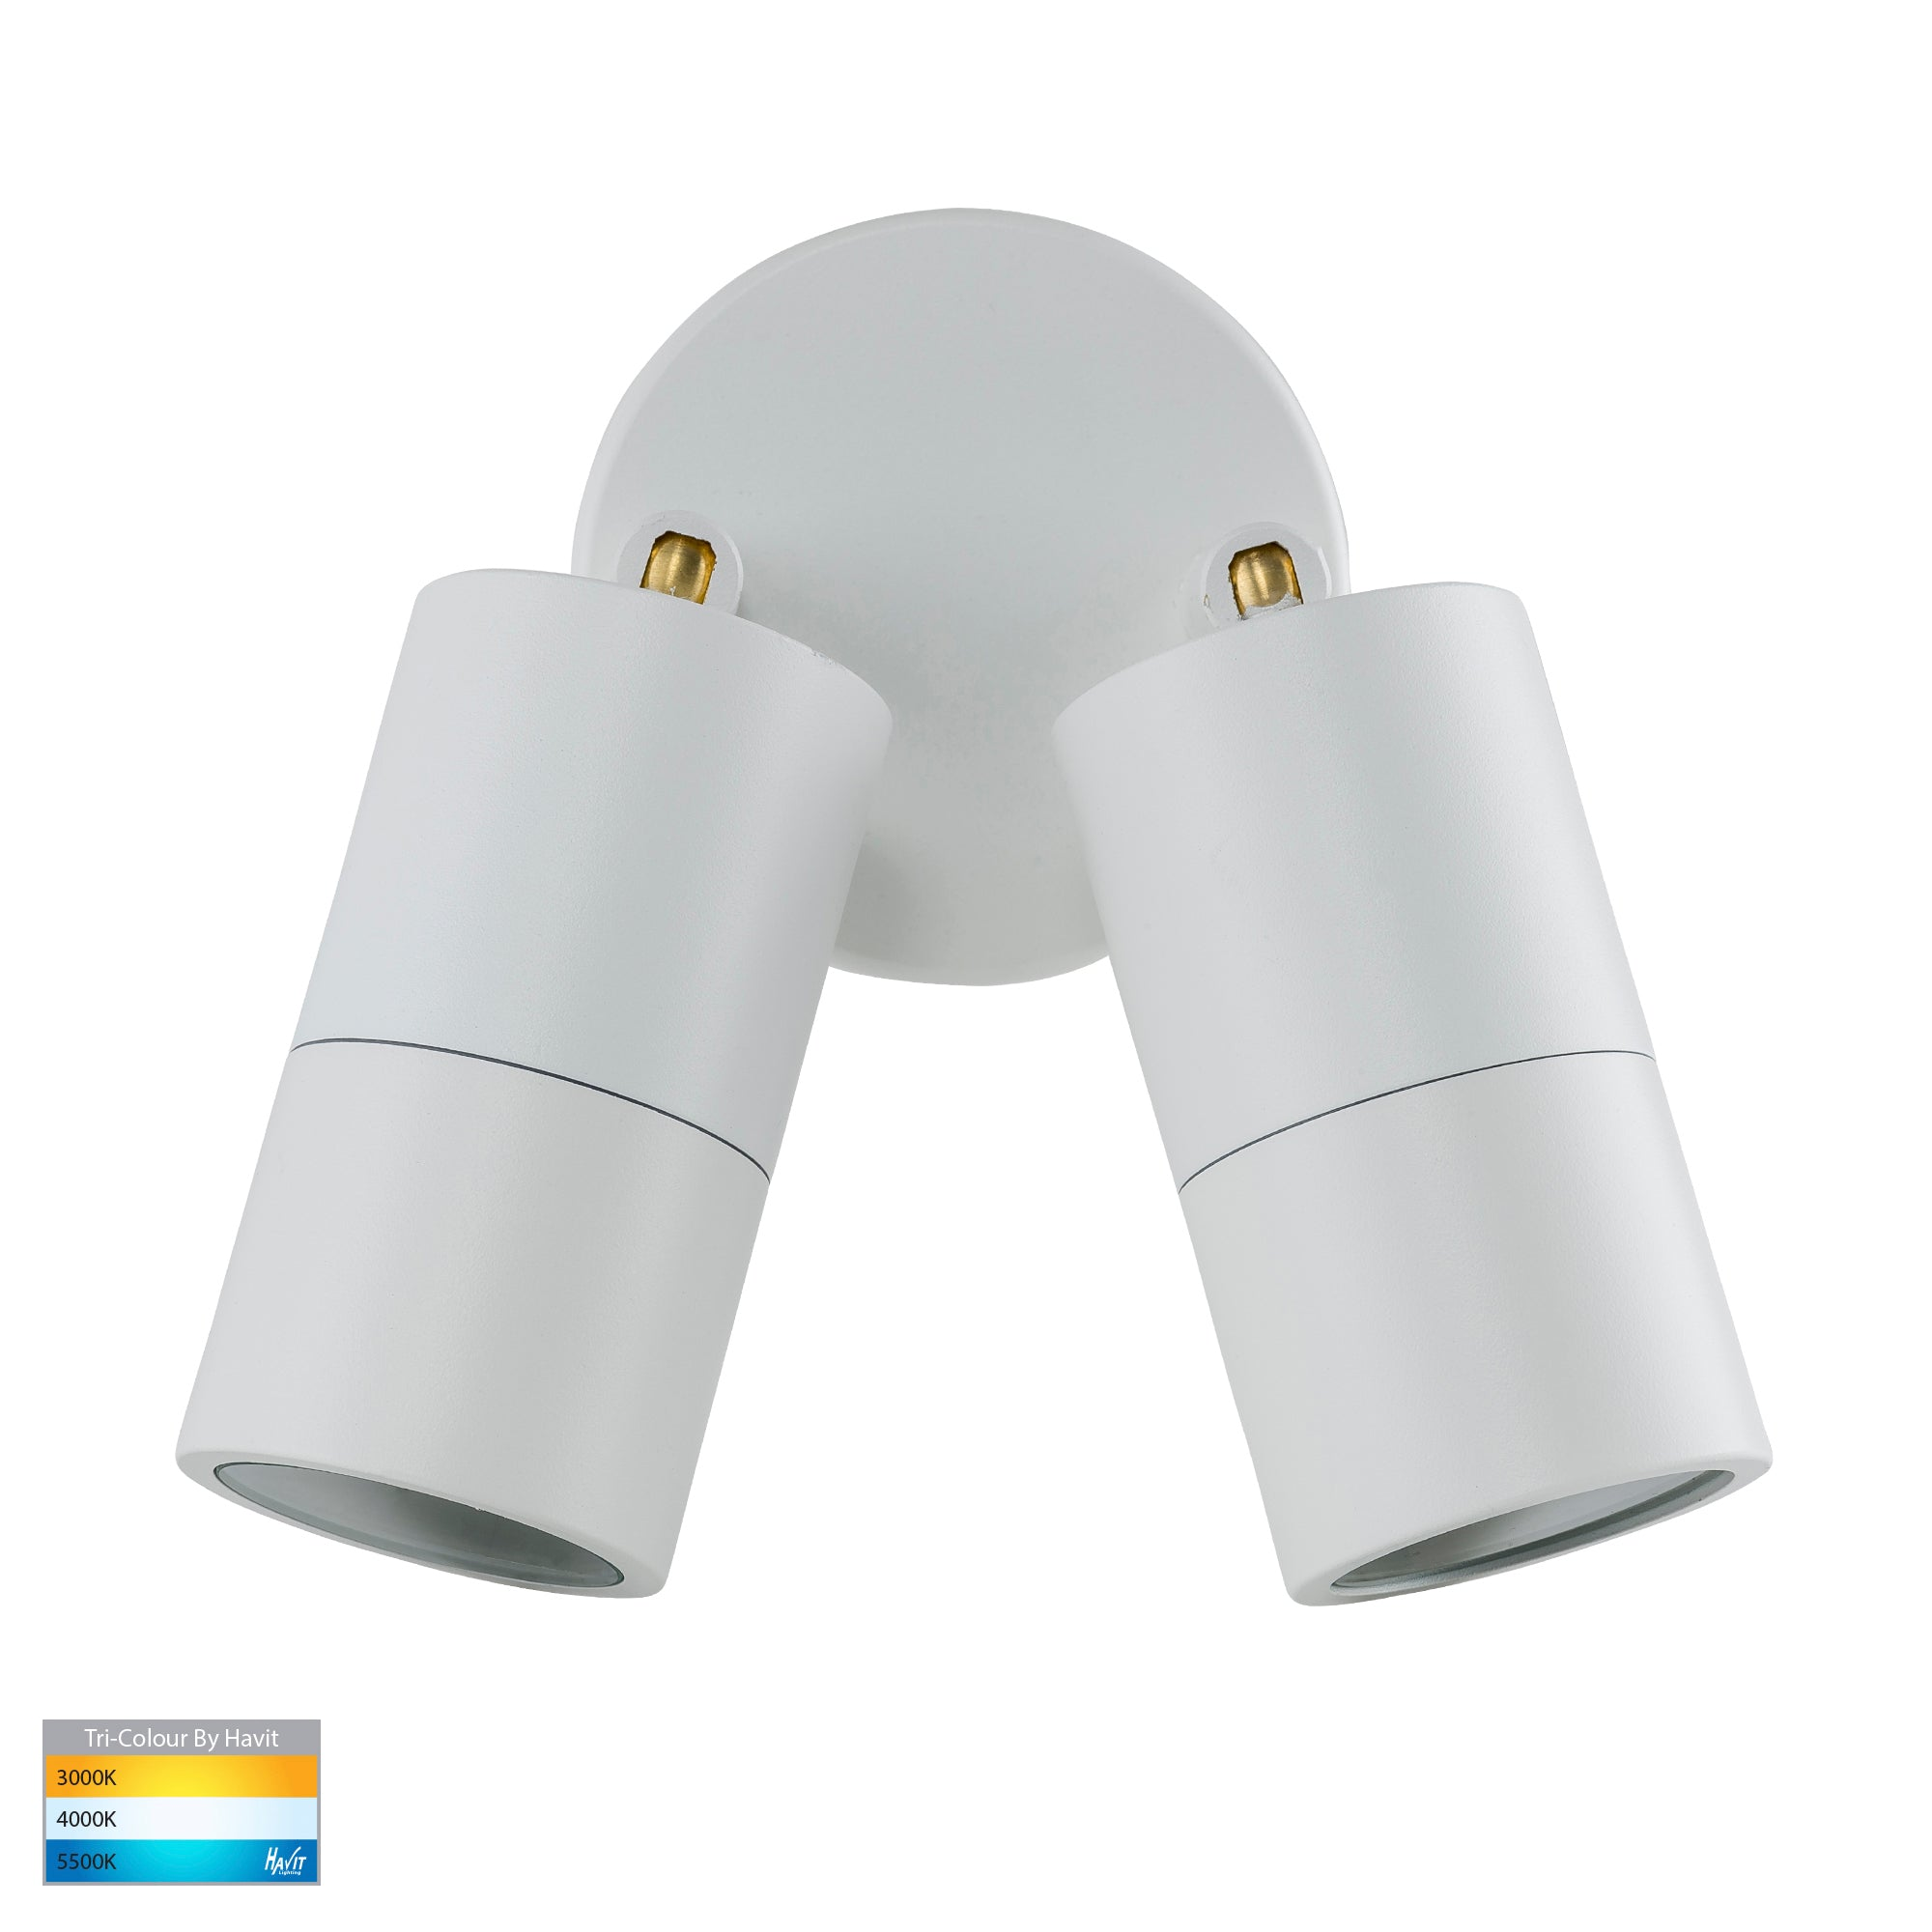 HV1335T-HV1337T - Tivah White TRI Colour Double Adjustable Wall Pillar Lights